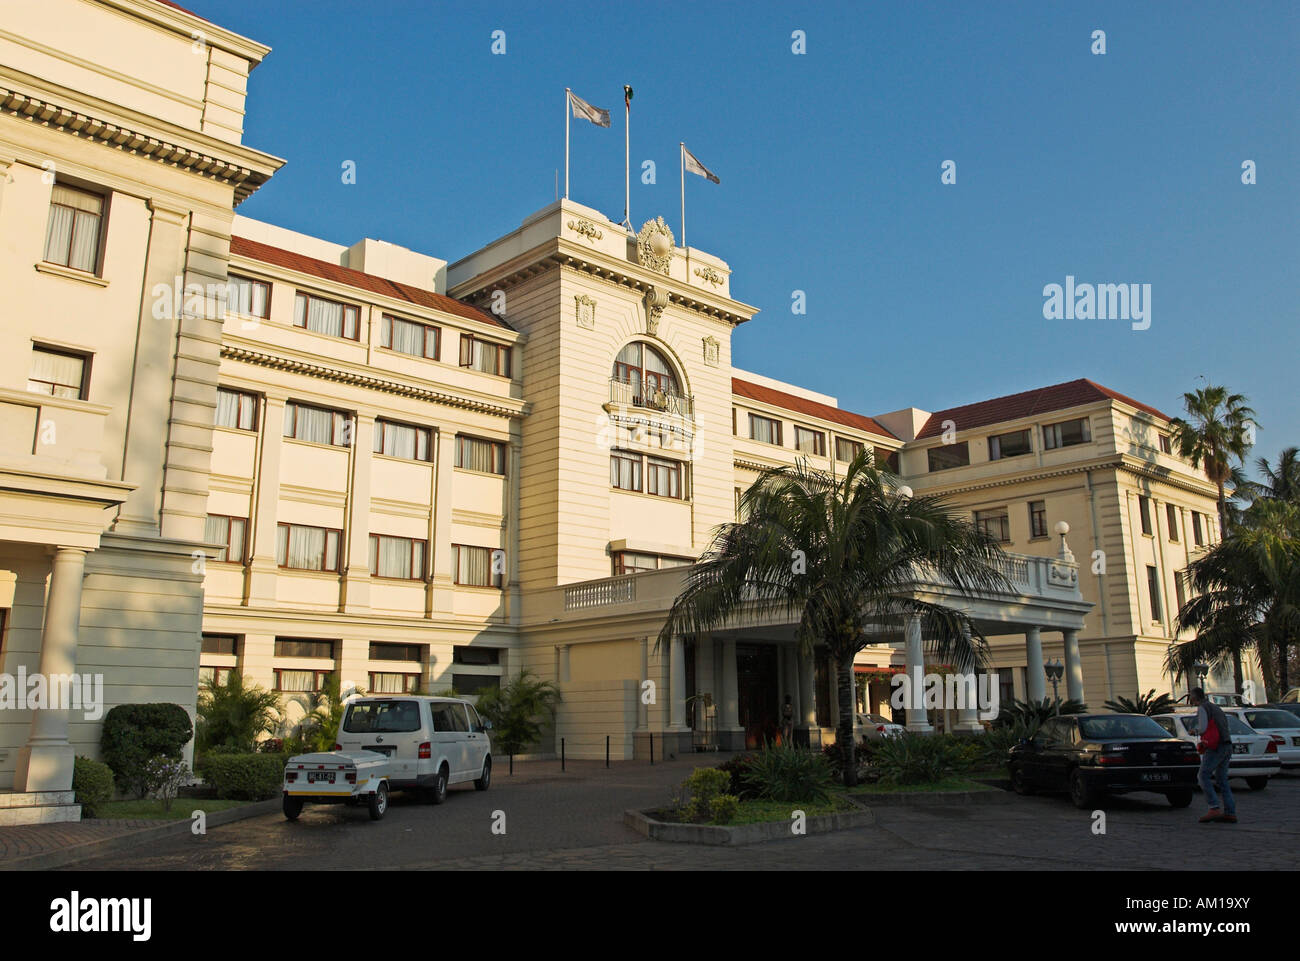 Hotel Polana Maputo Mozambique Africa Stock Photo Royalty Free - Hotel africa i maputo